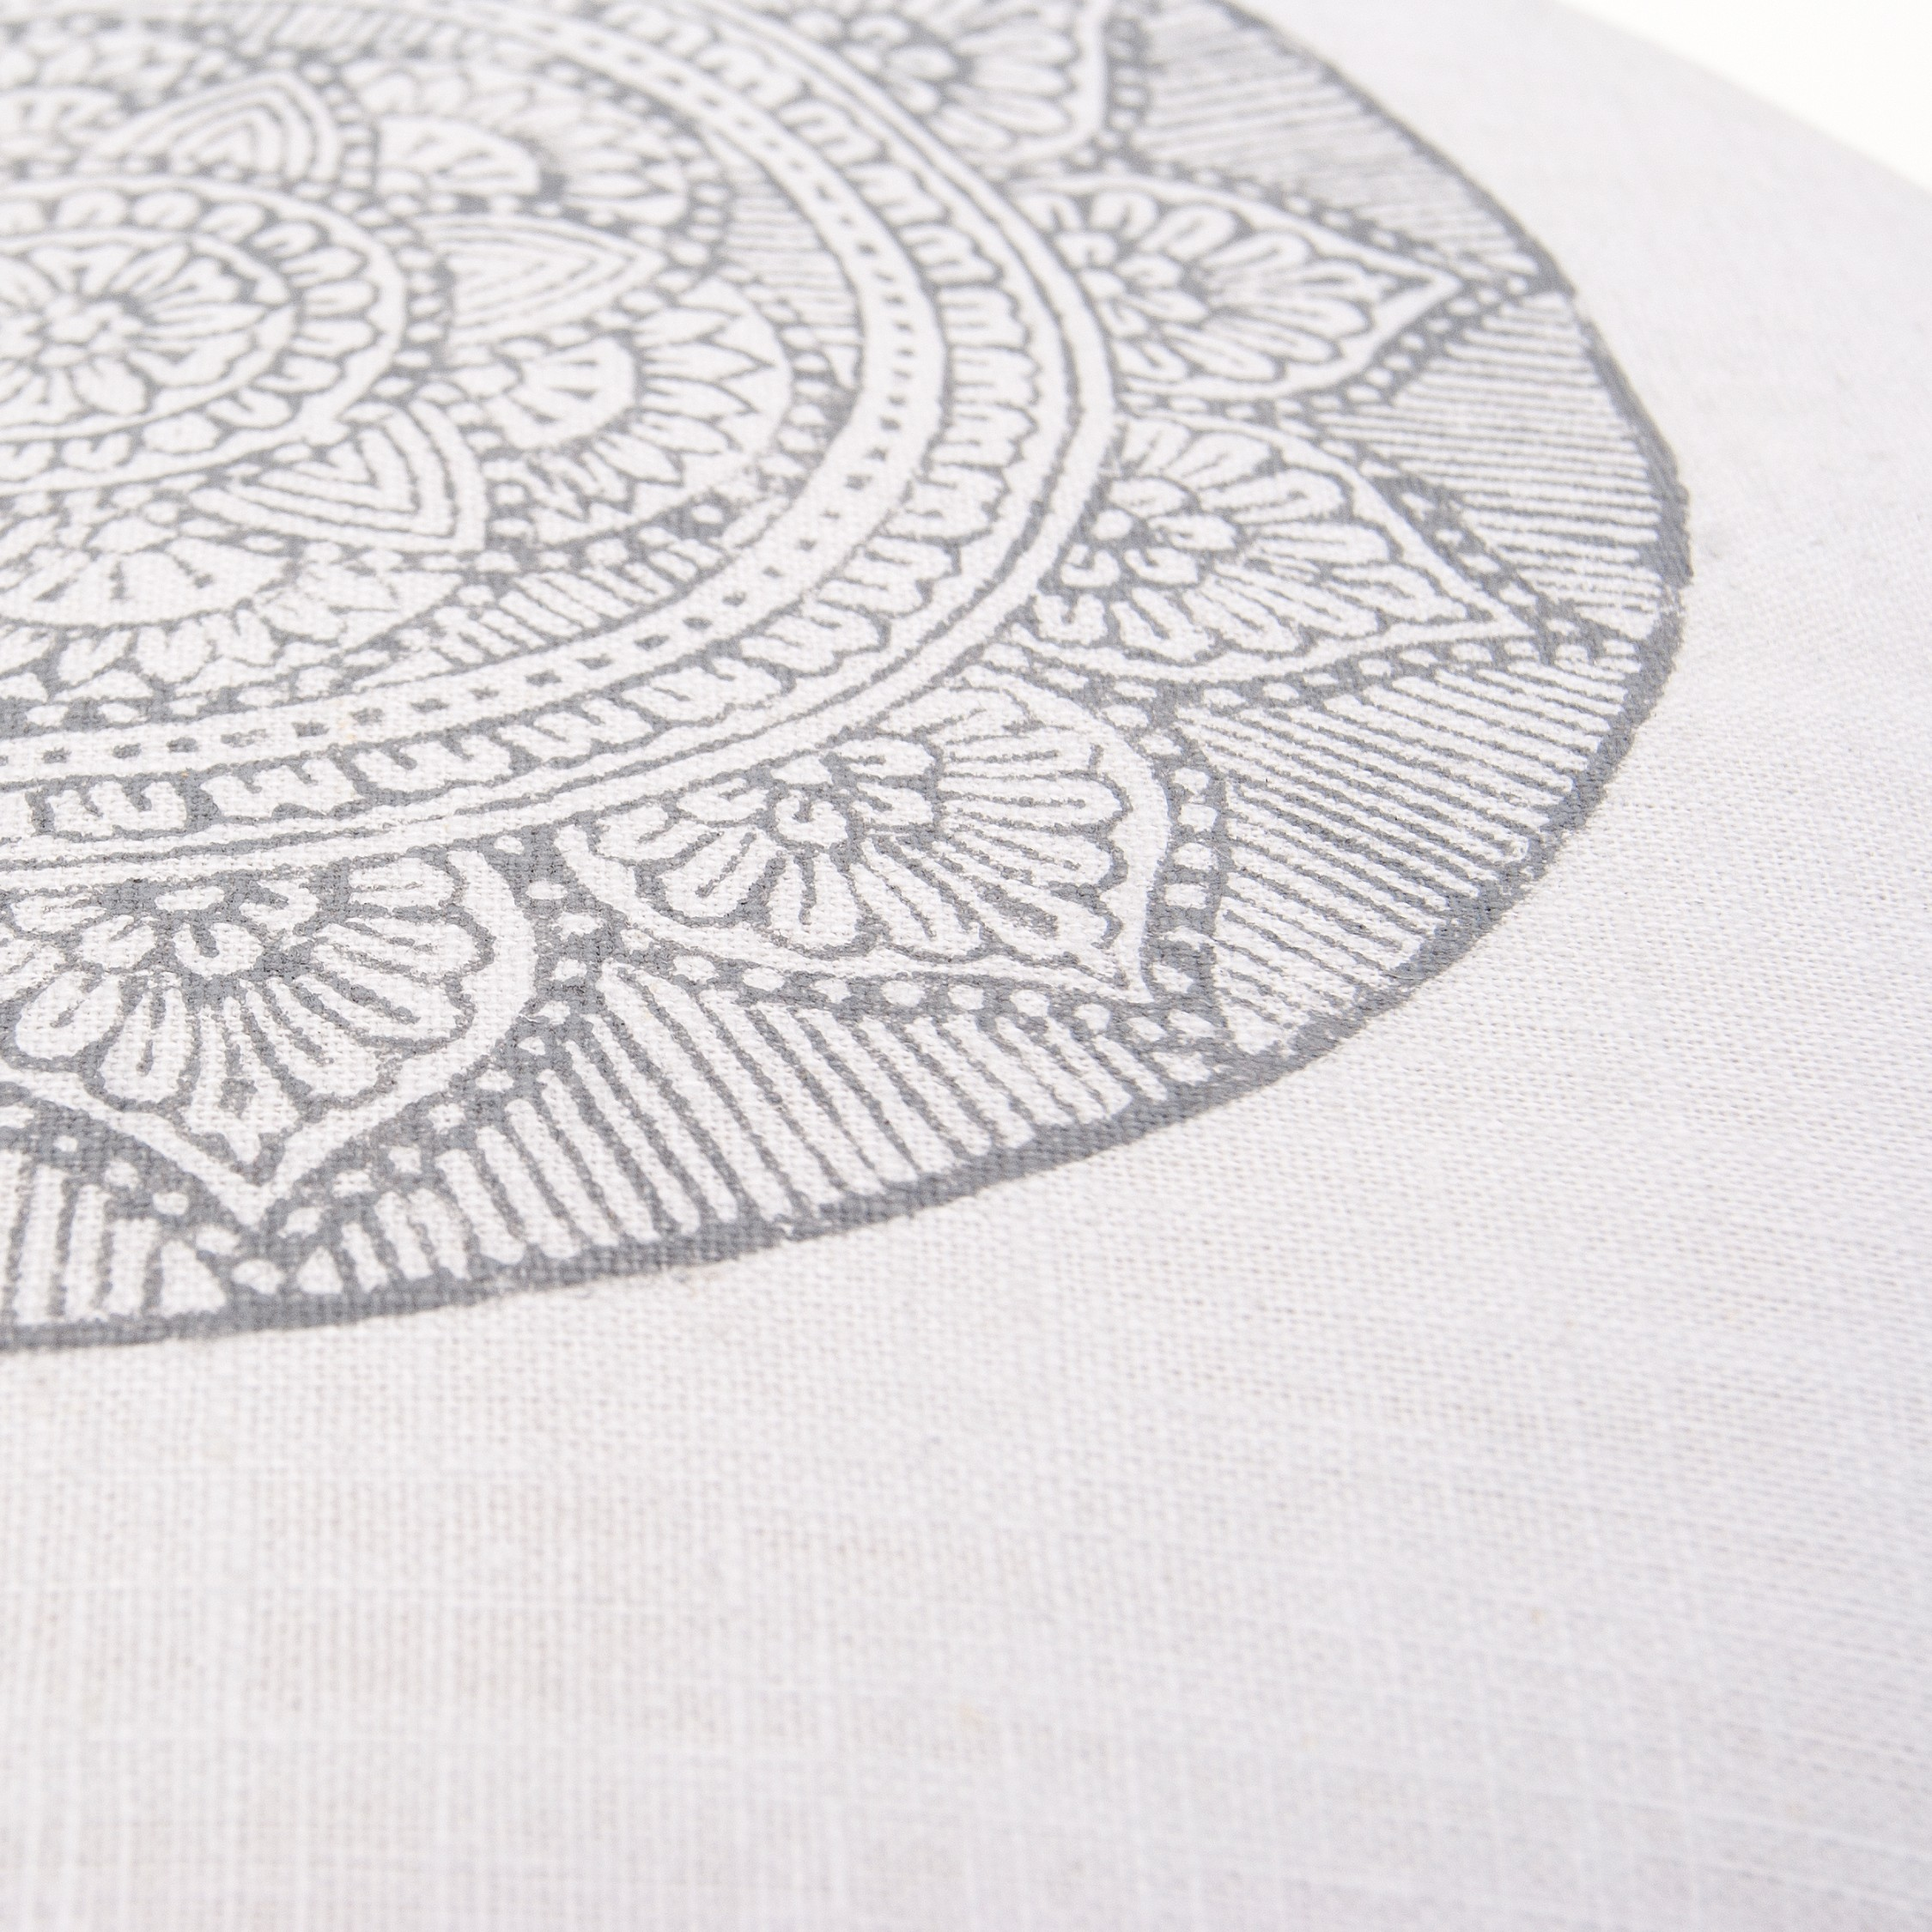 Handprinted meditation pillow, ethical meditation brand.